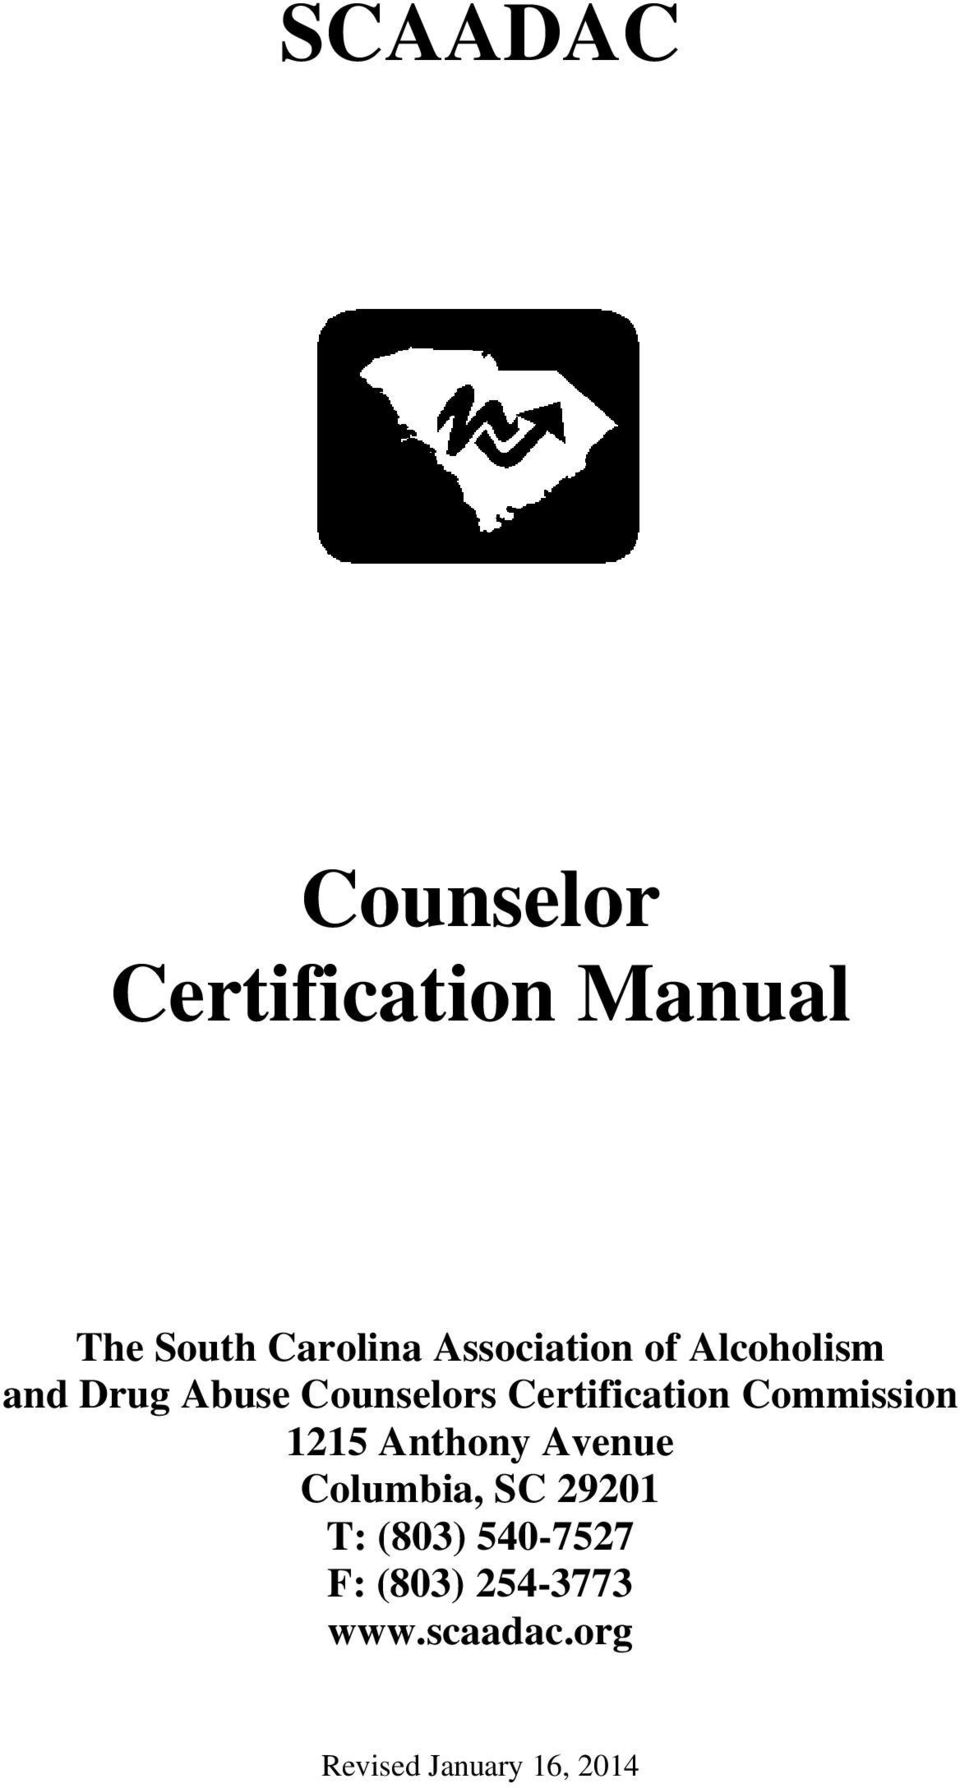 Scaadac Counselor Certification Manual Pdf